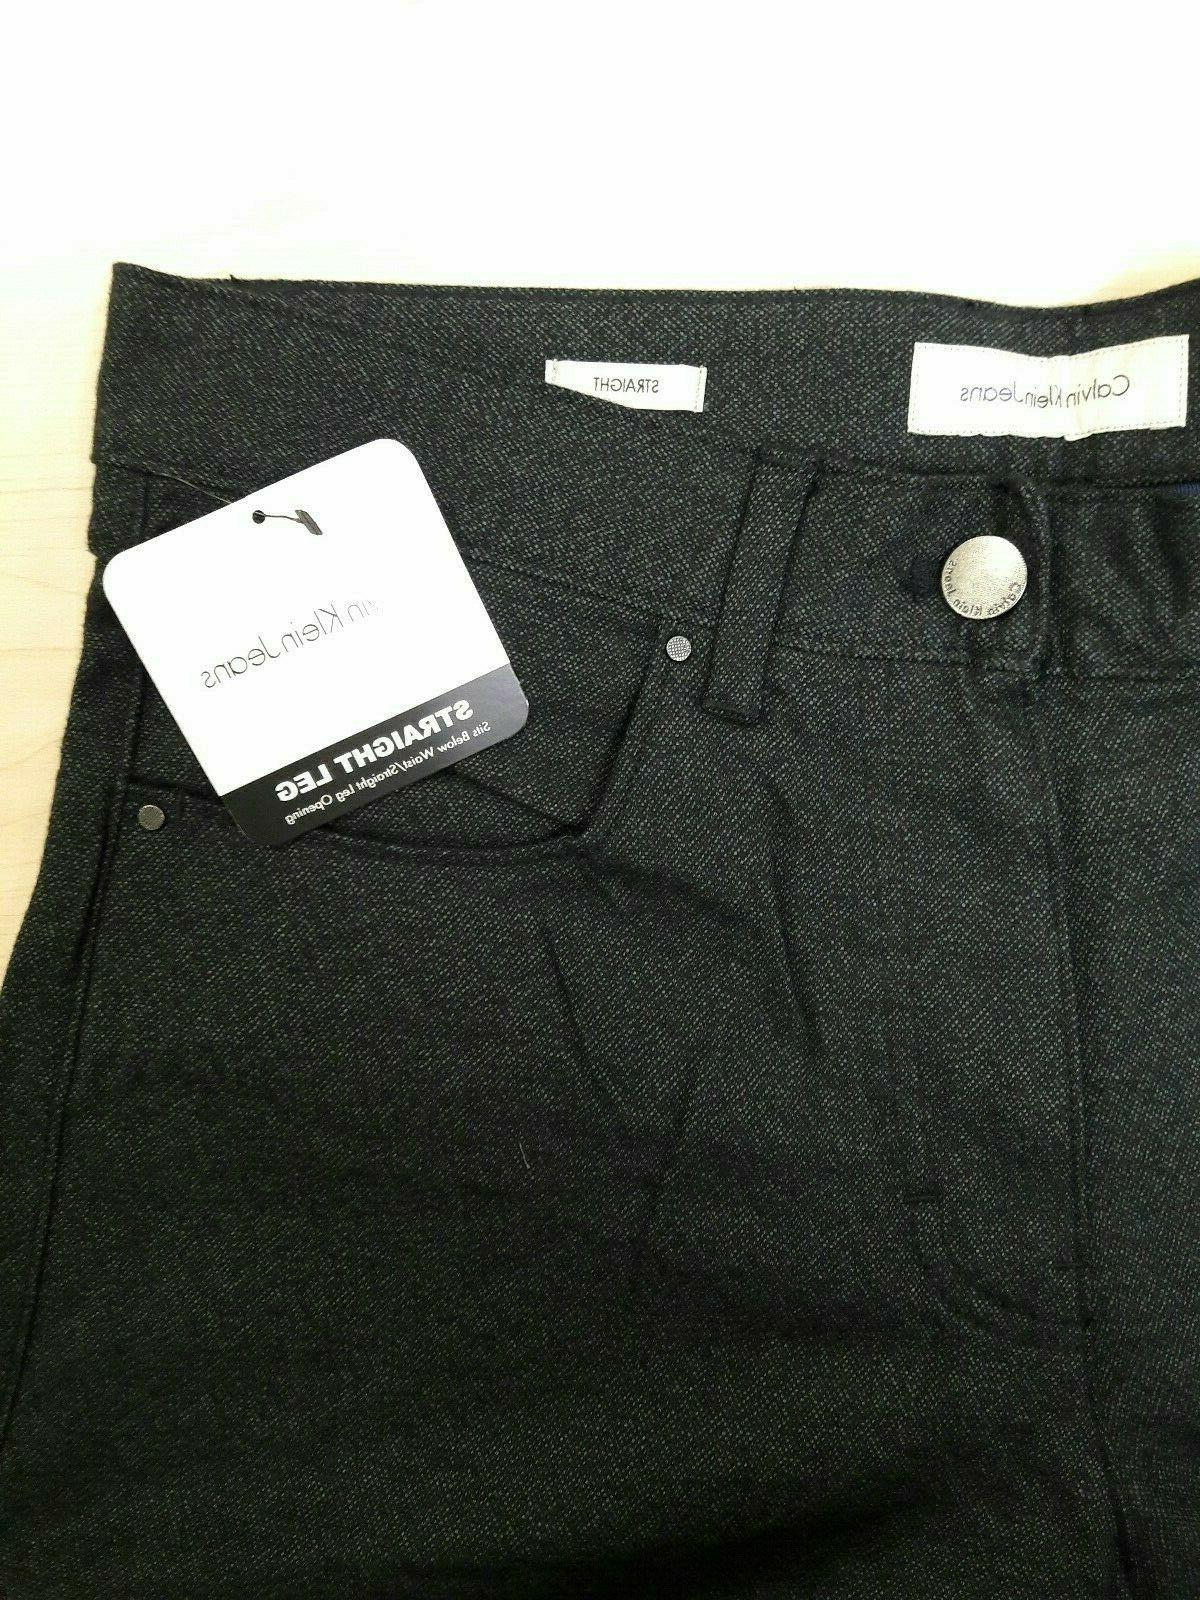 Calvin Klein Easy Fit Mens Jeans Straight COLOR: BLACK, BLUE GRAY